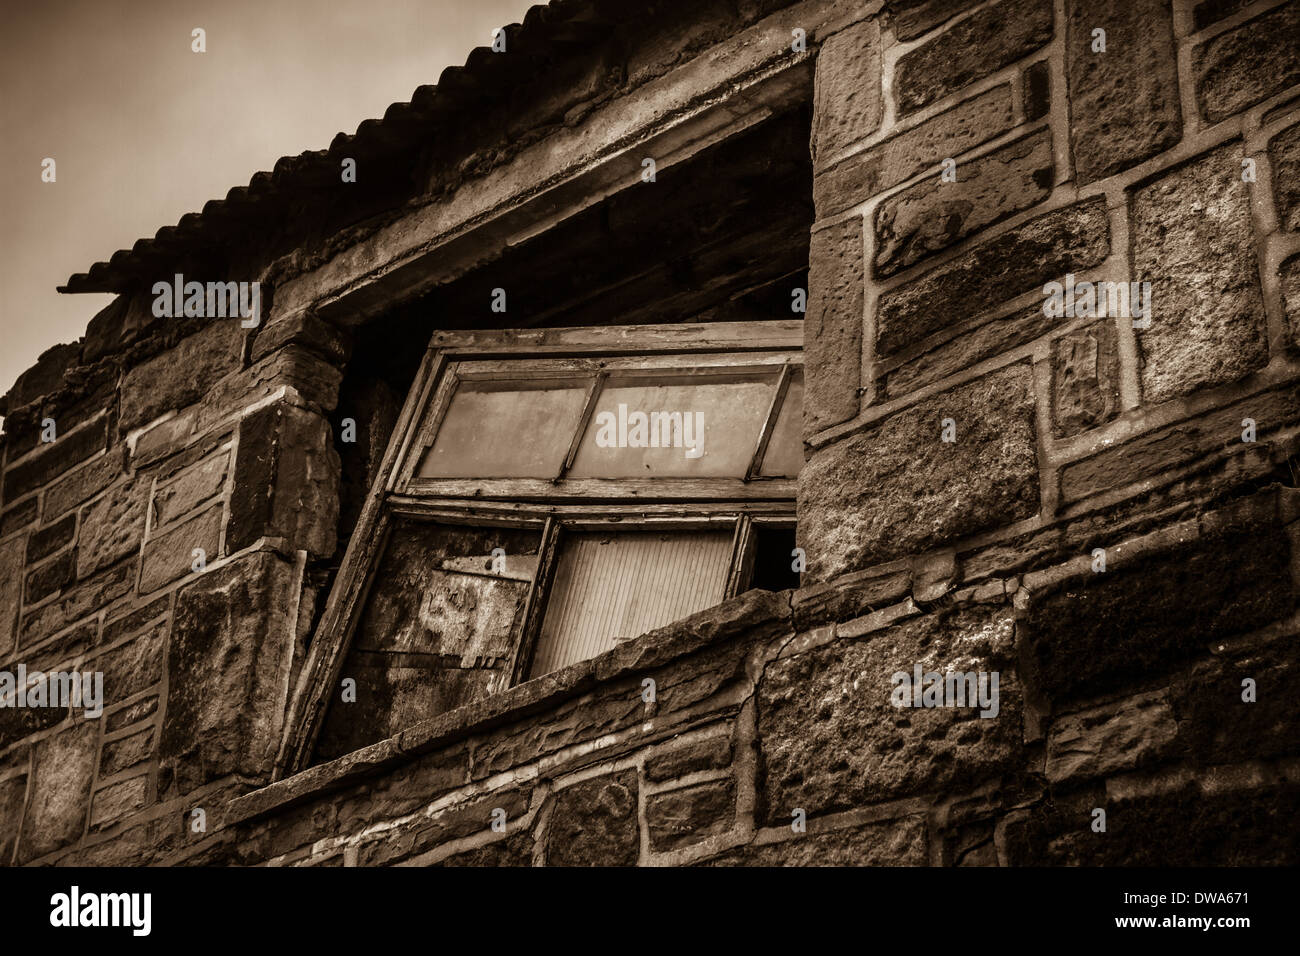 Derelict window in a stone farm building - Stock Image